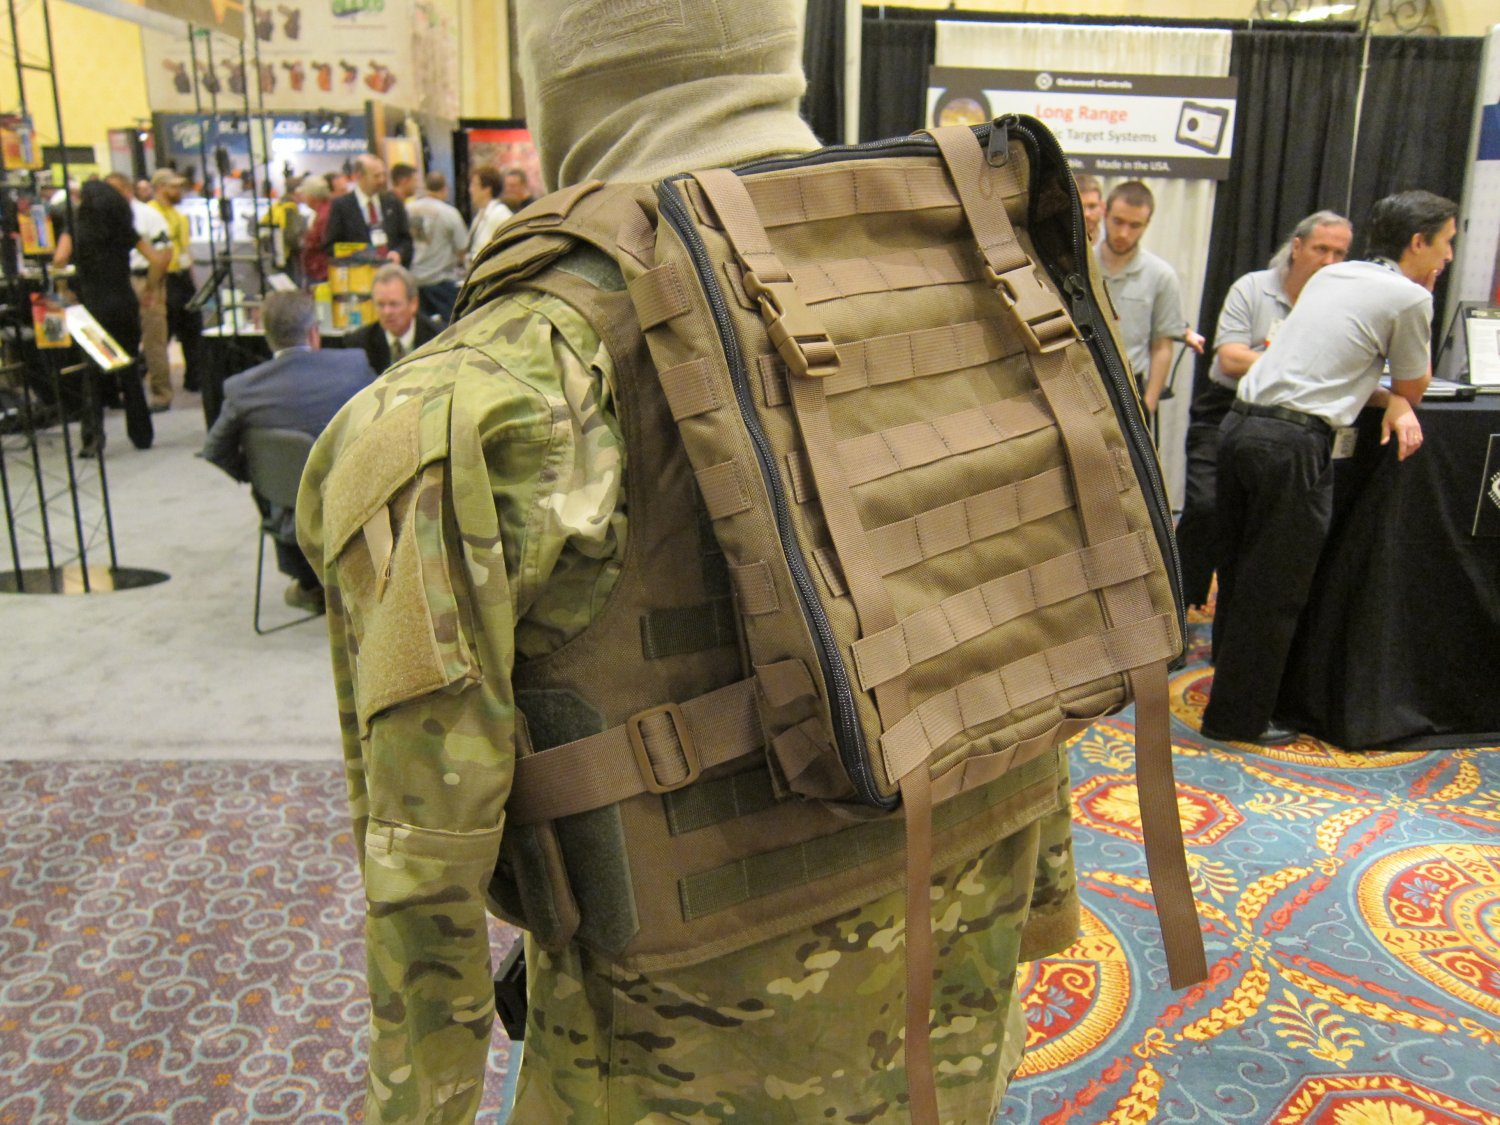 P2 Systems P2Sys Centurion Armour Maniple I Body Armor Carrier Tactical Vest with Integra Pack at SHOT Show 2011 2 <!  :en  >Hardpoint Equipment Tactical Armor Carriers (formerly Personal Protective Systems, or P2 Systems): Best Tactical Body Armor Plate Carriers on the Planet? DR Looks at the Latest Hard Point Hard Armor Plate Carriers, Battle Belt, MOLLE Backpack System, and Passive Ventilation Channels/Removable Padding System at SHOT Show 2011 (Photos and Video!) <!  :  >